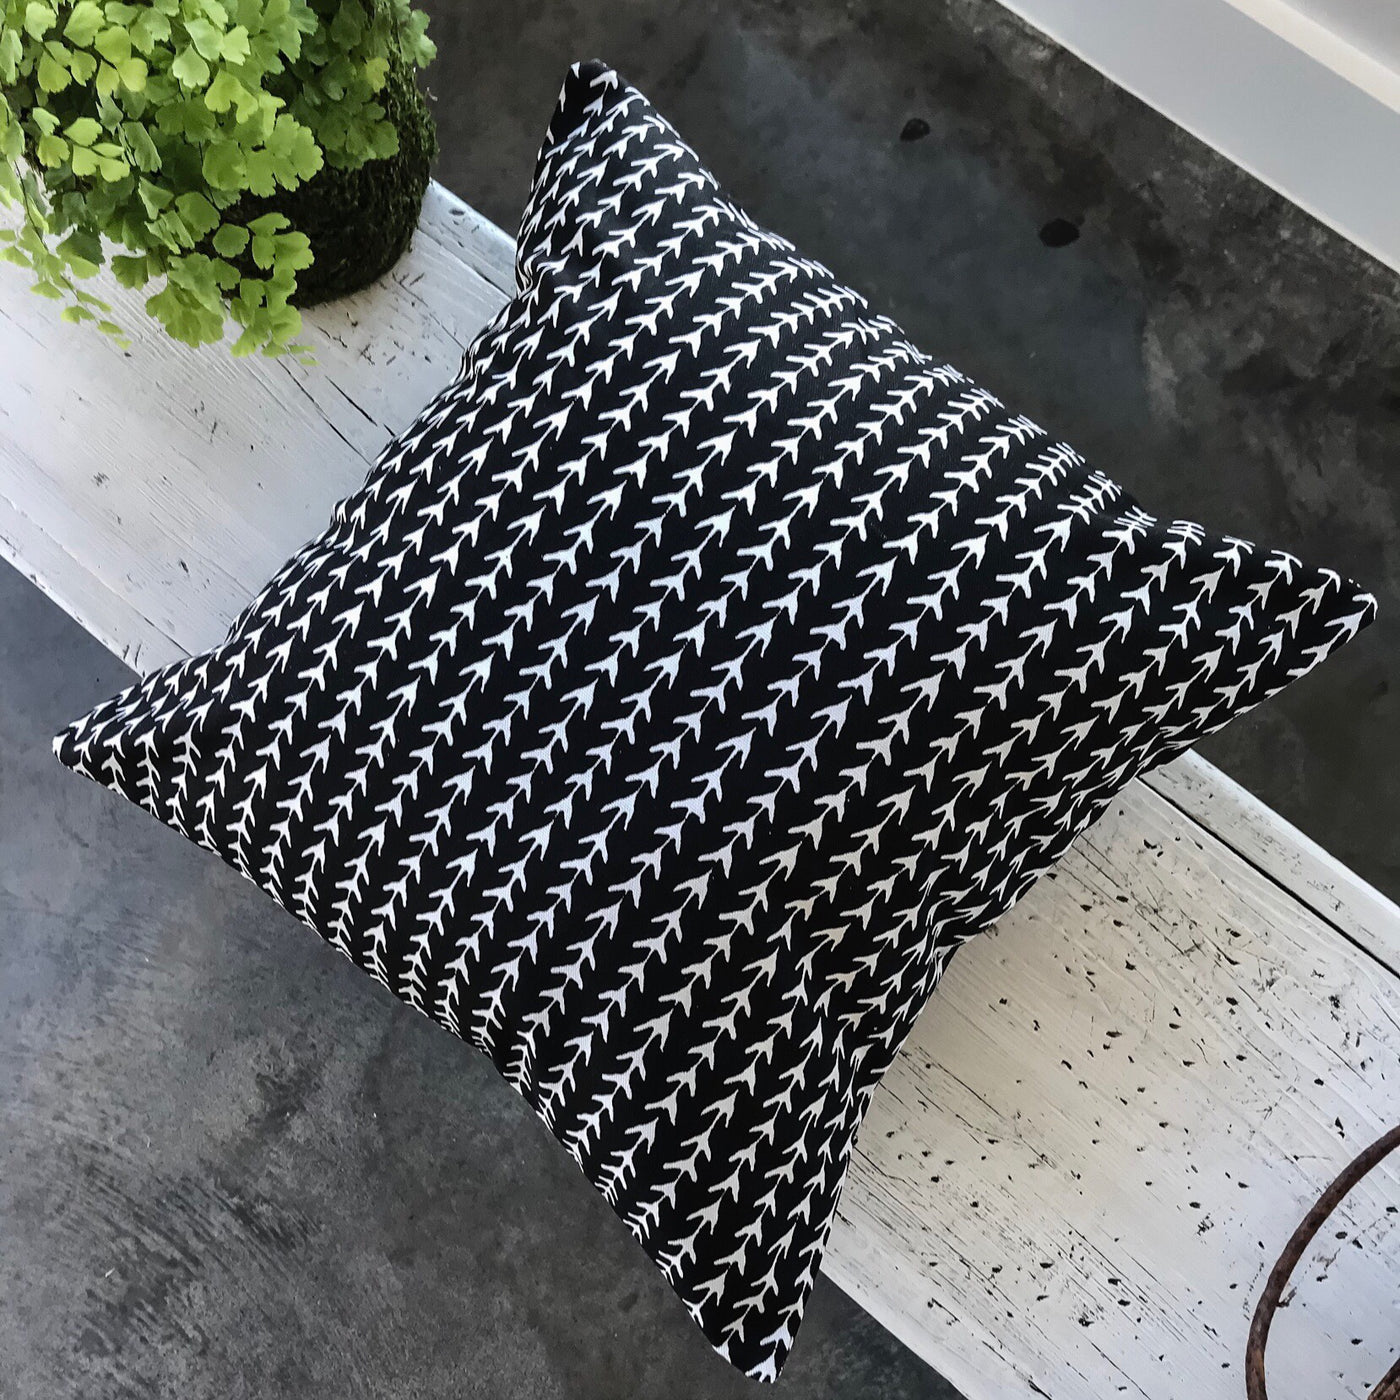 Stylish black pillows - NOAH - Studio Pillows